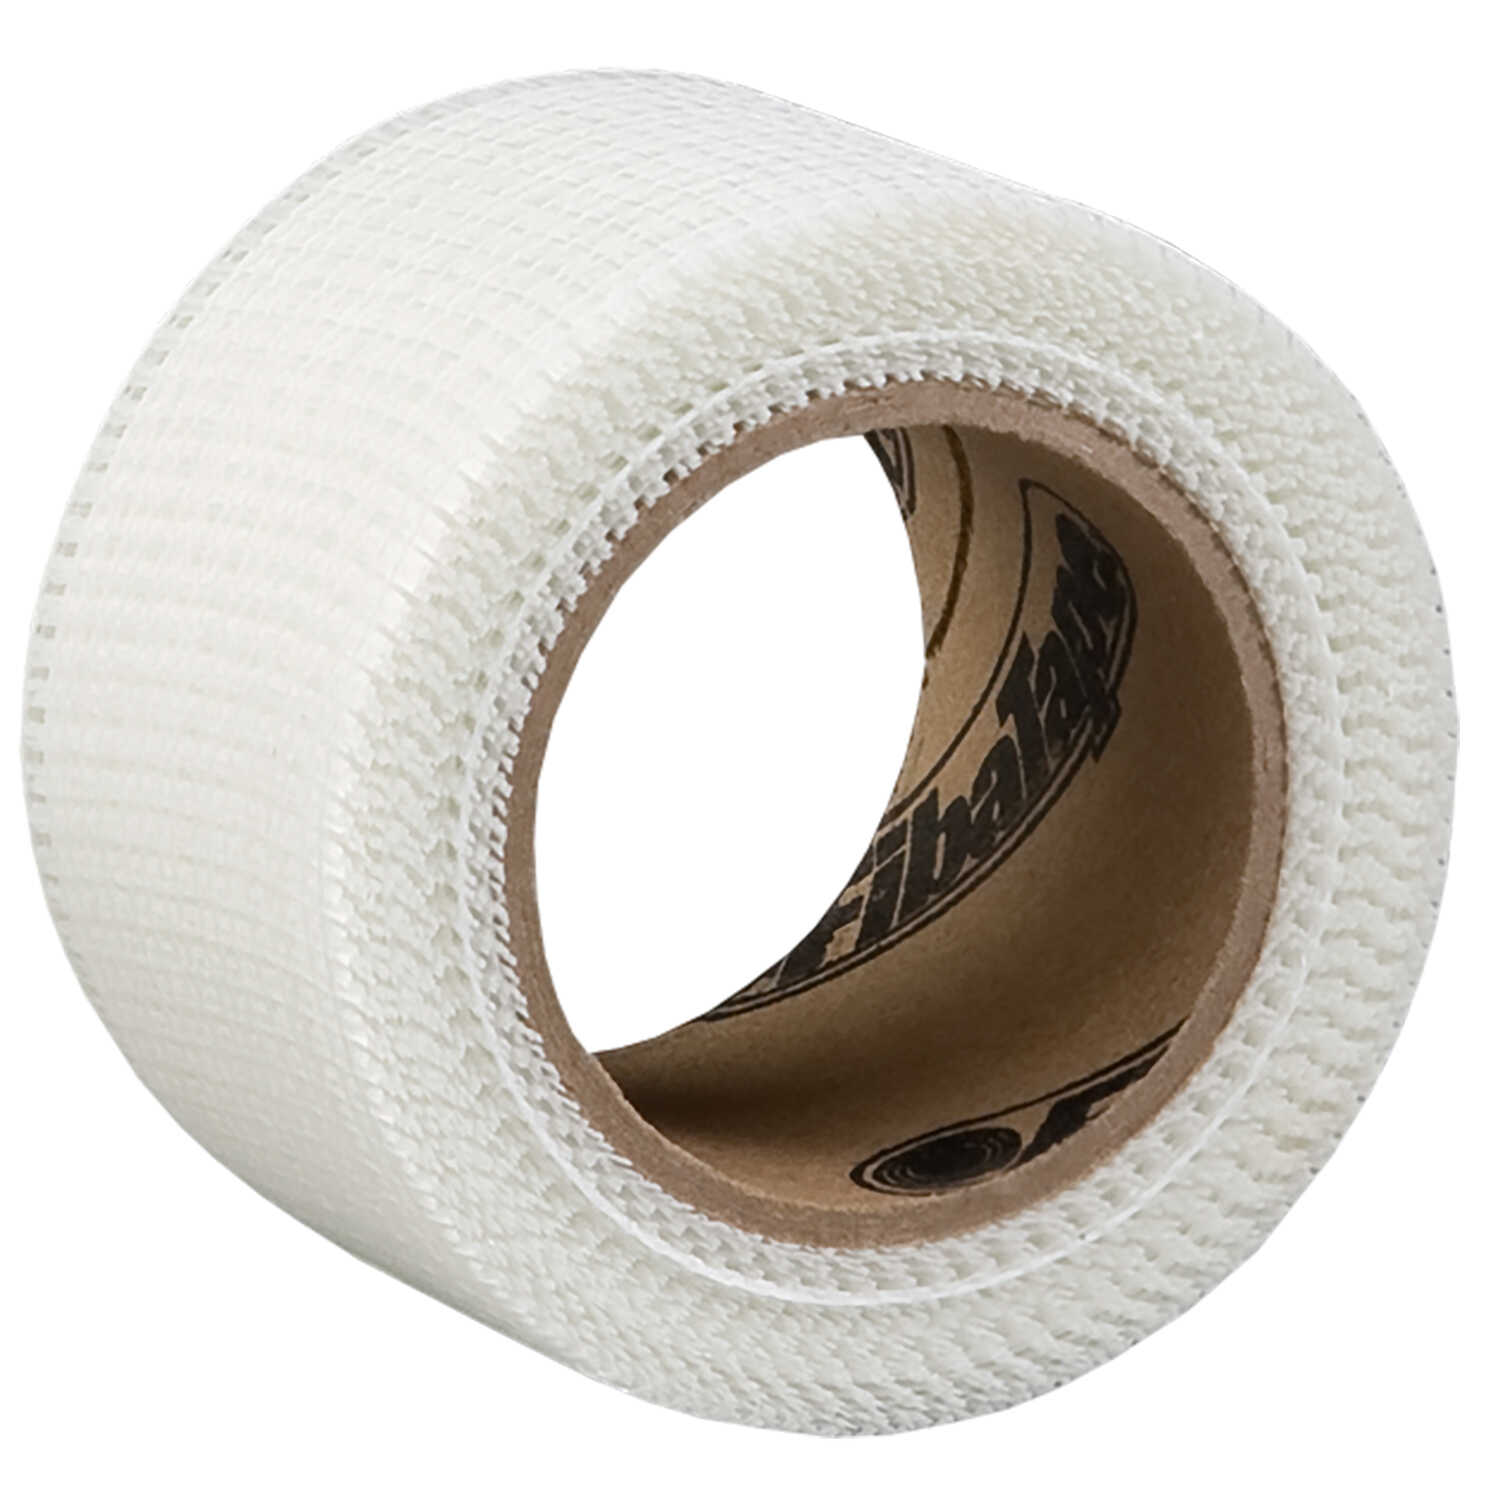 ADFORS  FibaTape  50 ft. L x 2 in. W Fiberglass Mesh  White  Self Adhesive Drywall Tape